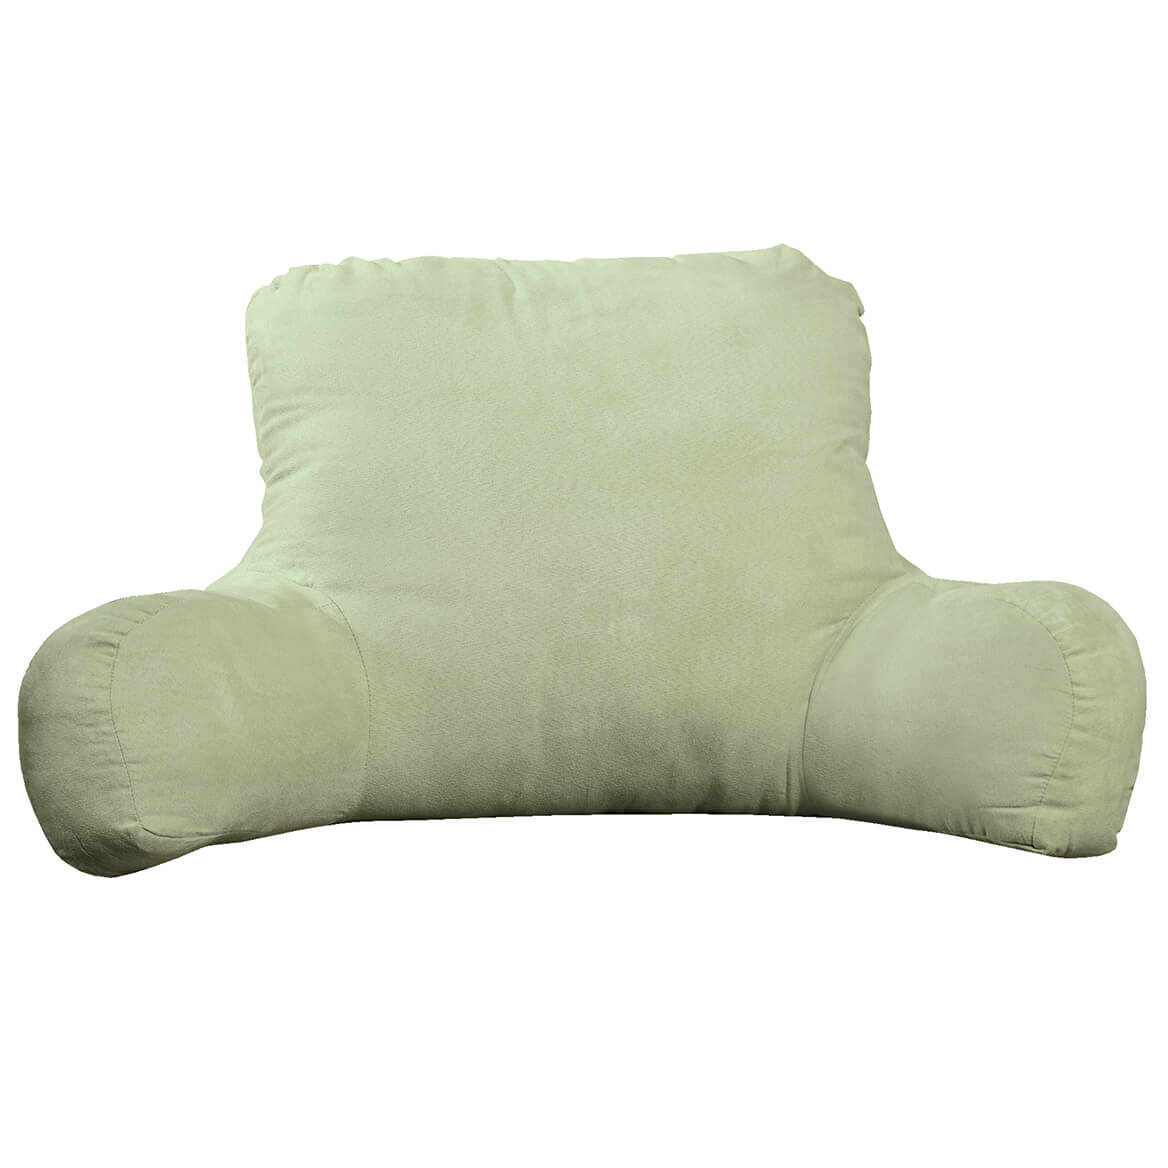 Miles Kimball Backrest Pillow With Firm Support Arms 20 X 31 X 14